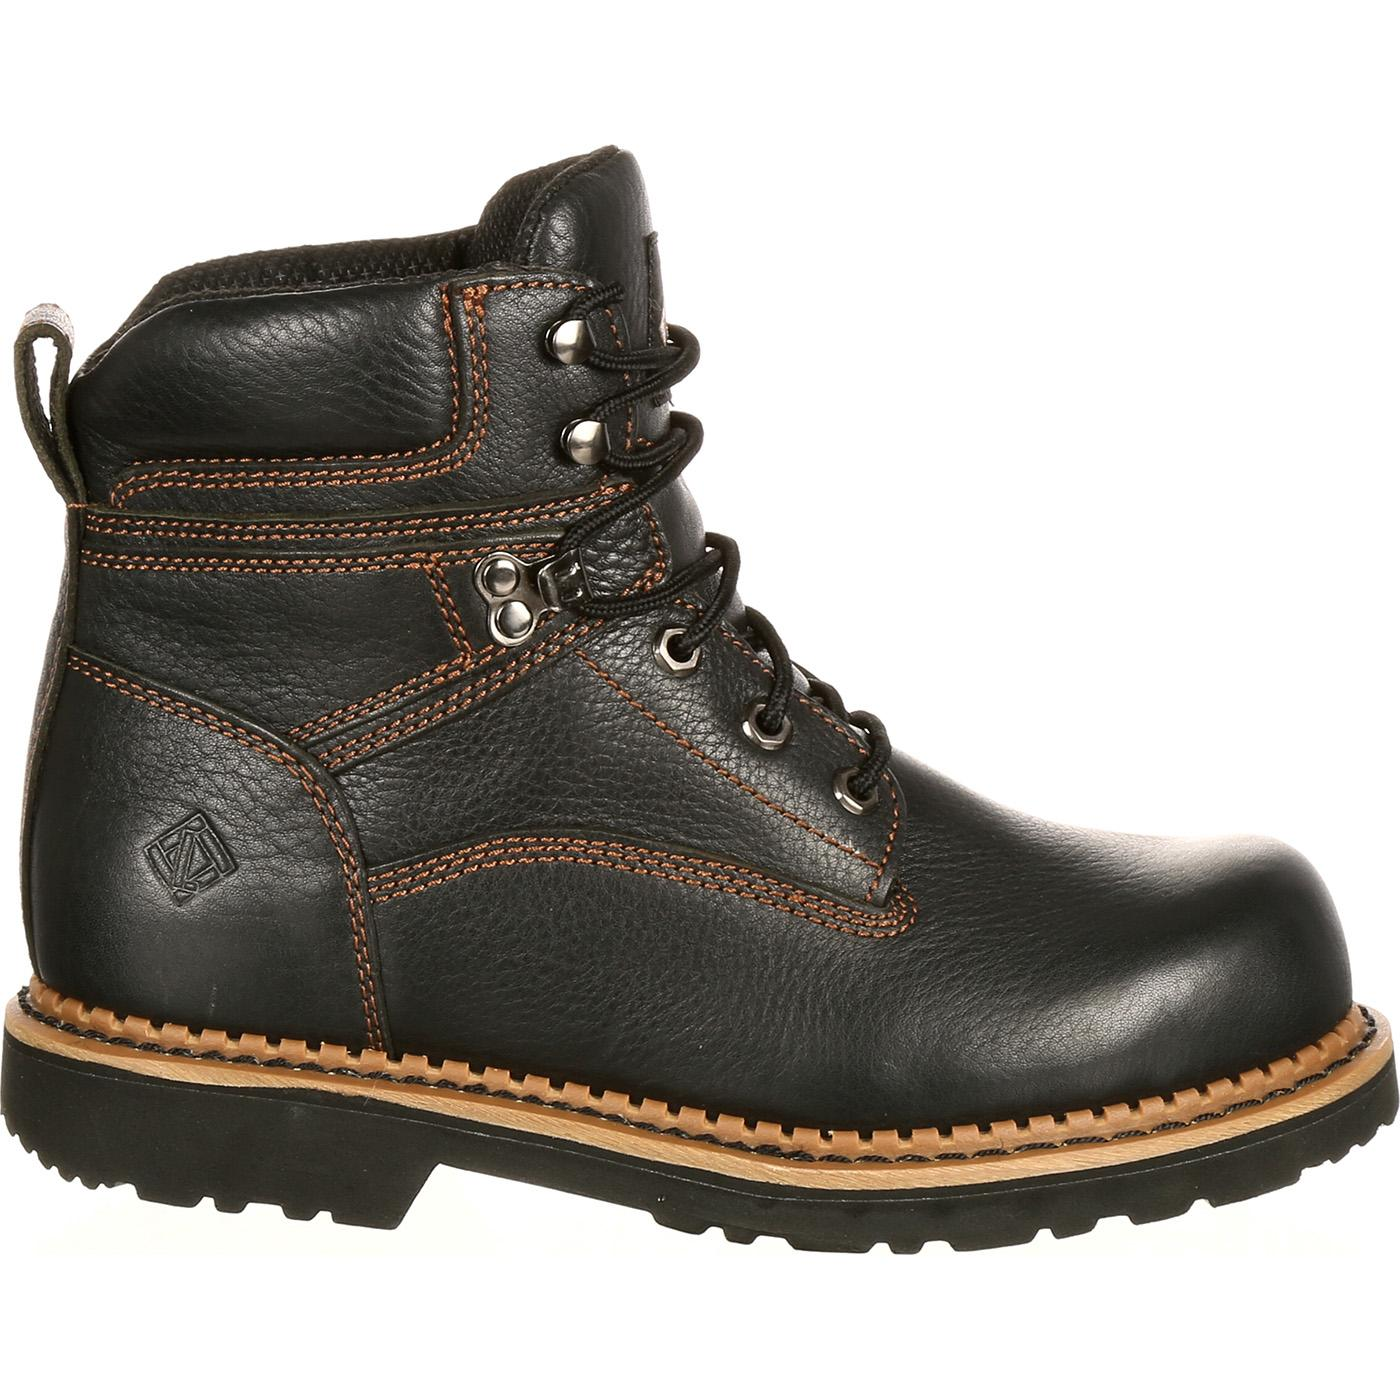 65bc1aac4c78 ... BootLehigh Safety Shoes Steel Toe Static-Dissipative Work Boot,.  Loading zoom